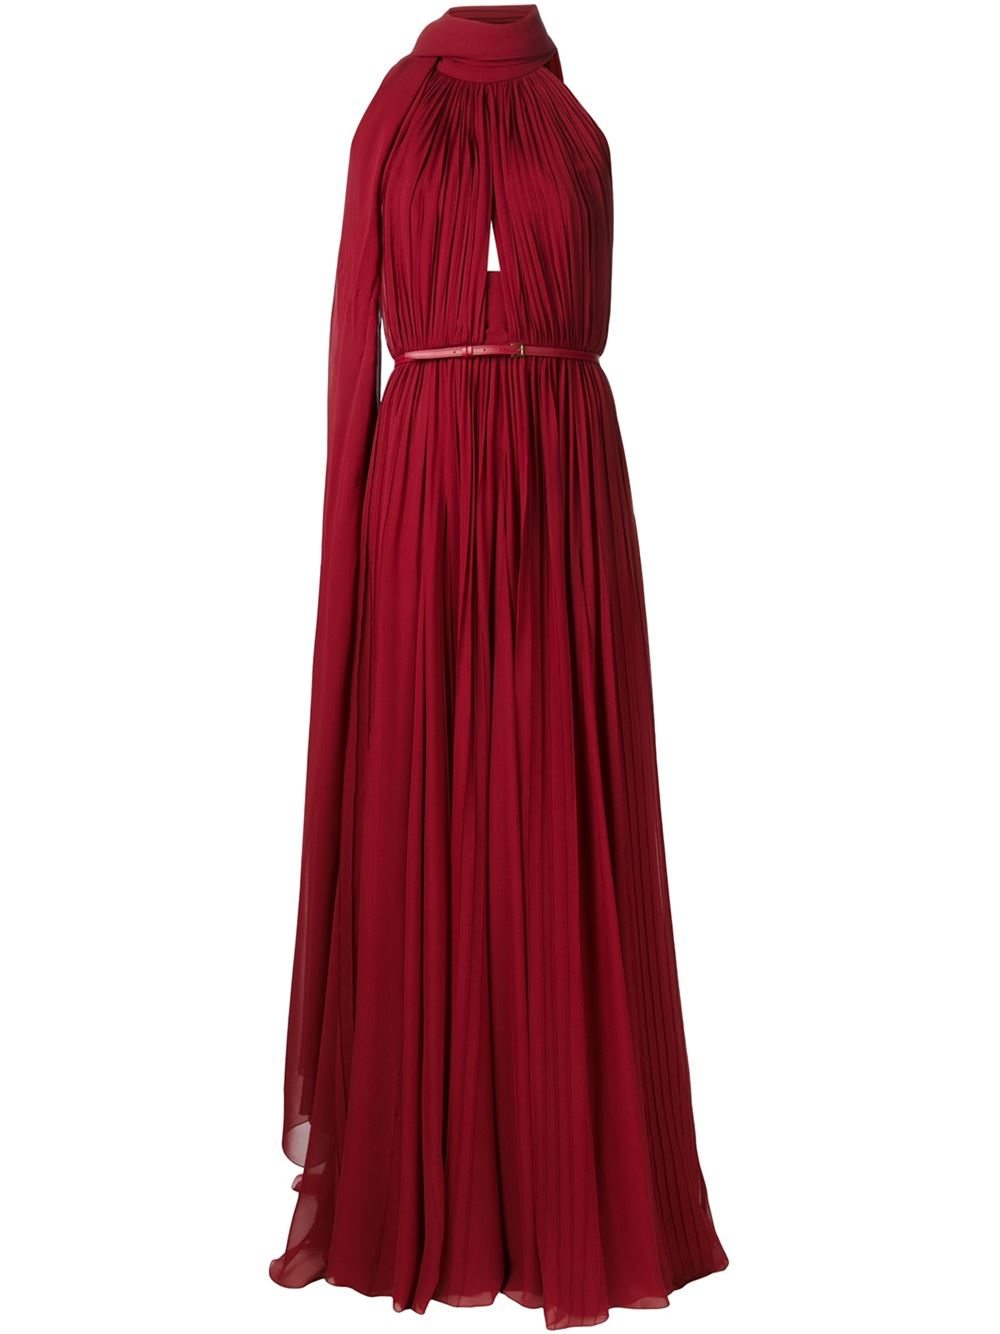 Elie saab Backless Long Dress in Red | Lyst